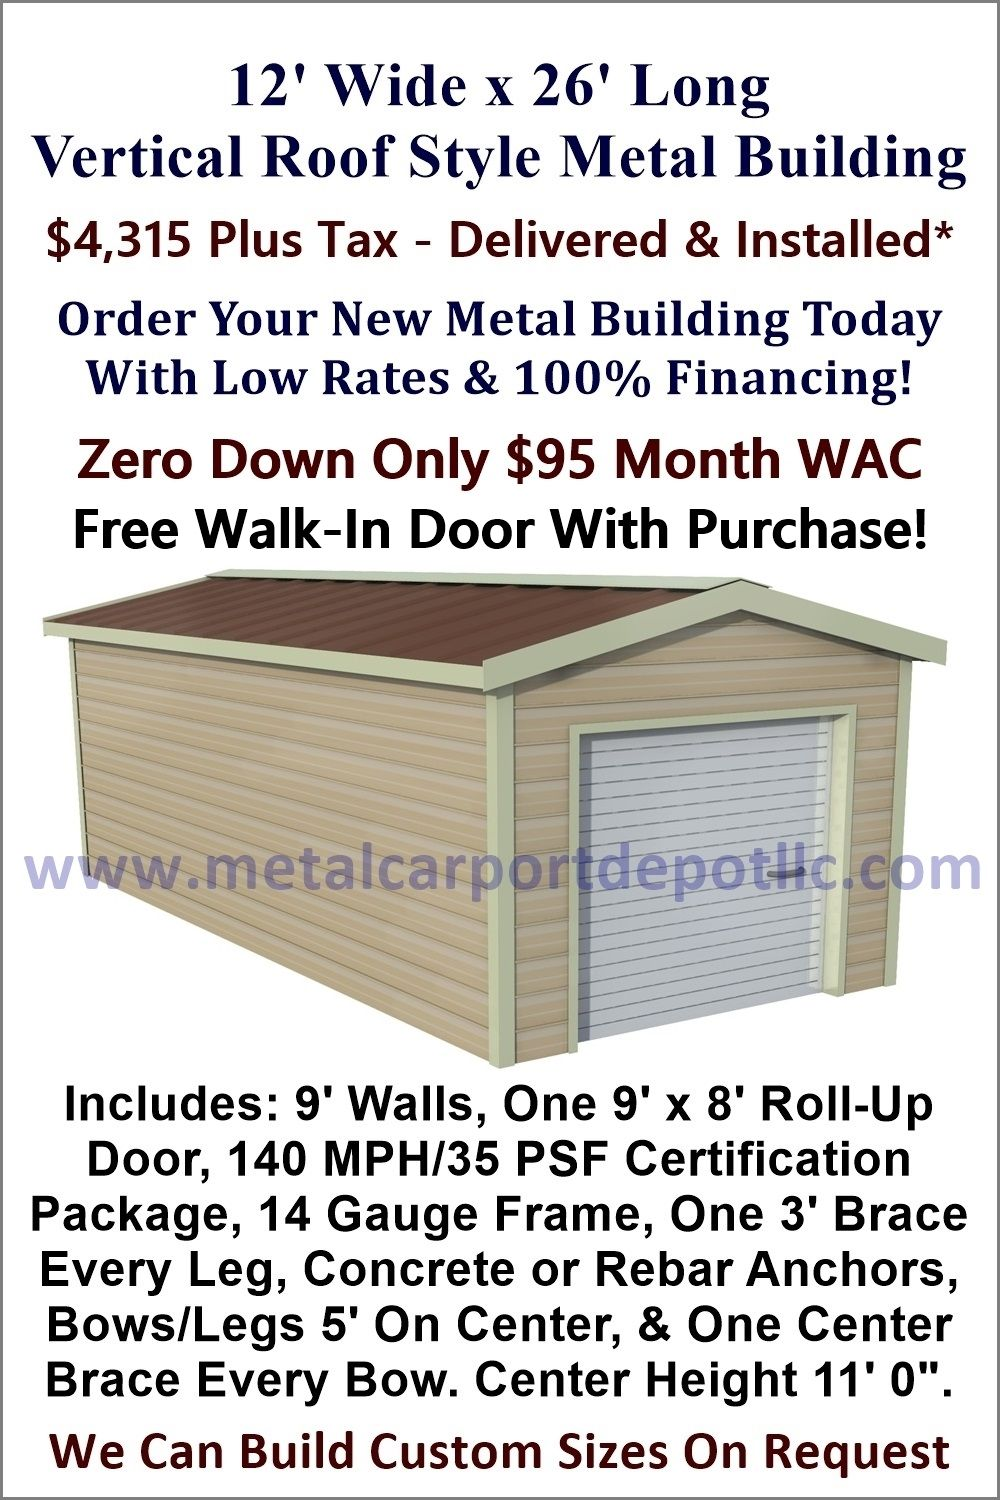 12 X 26 Steel Building Vertical Roof Metal Garage Metal Carport Depot Metal Buildings Roof Styles Metal Roof